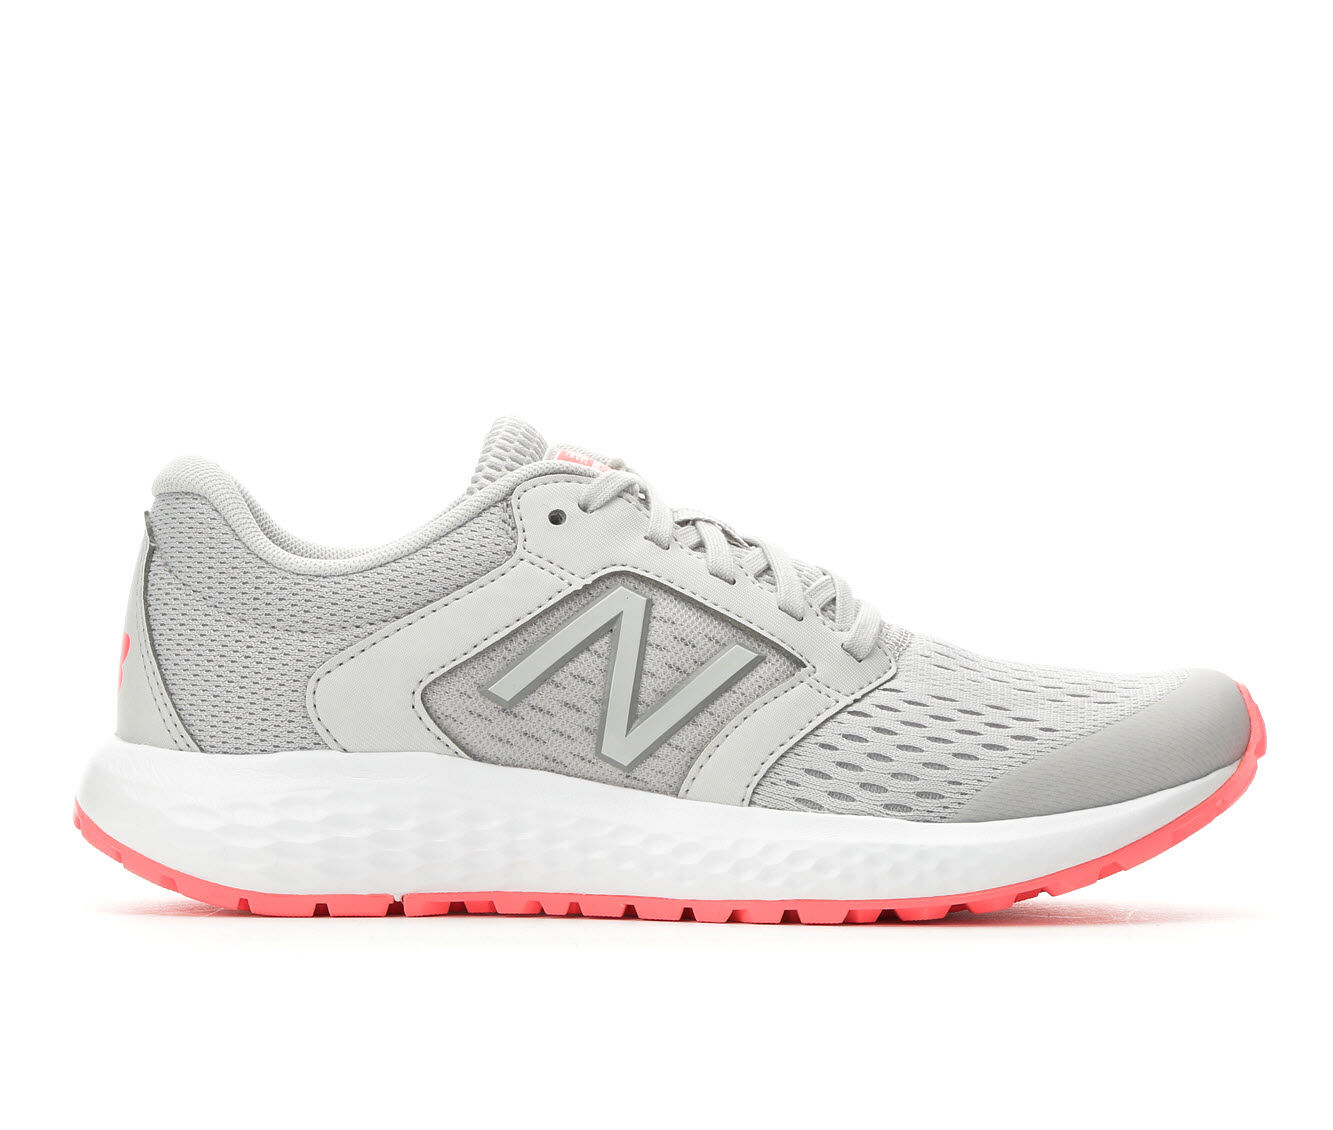 Women's New Balance W520v5 Running Shoes Grey/Guava